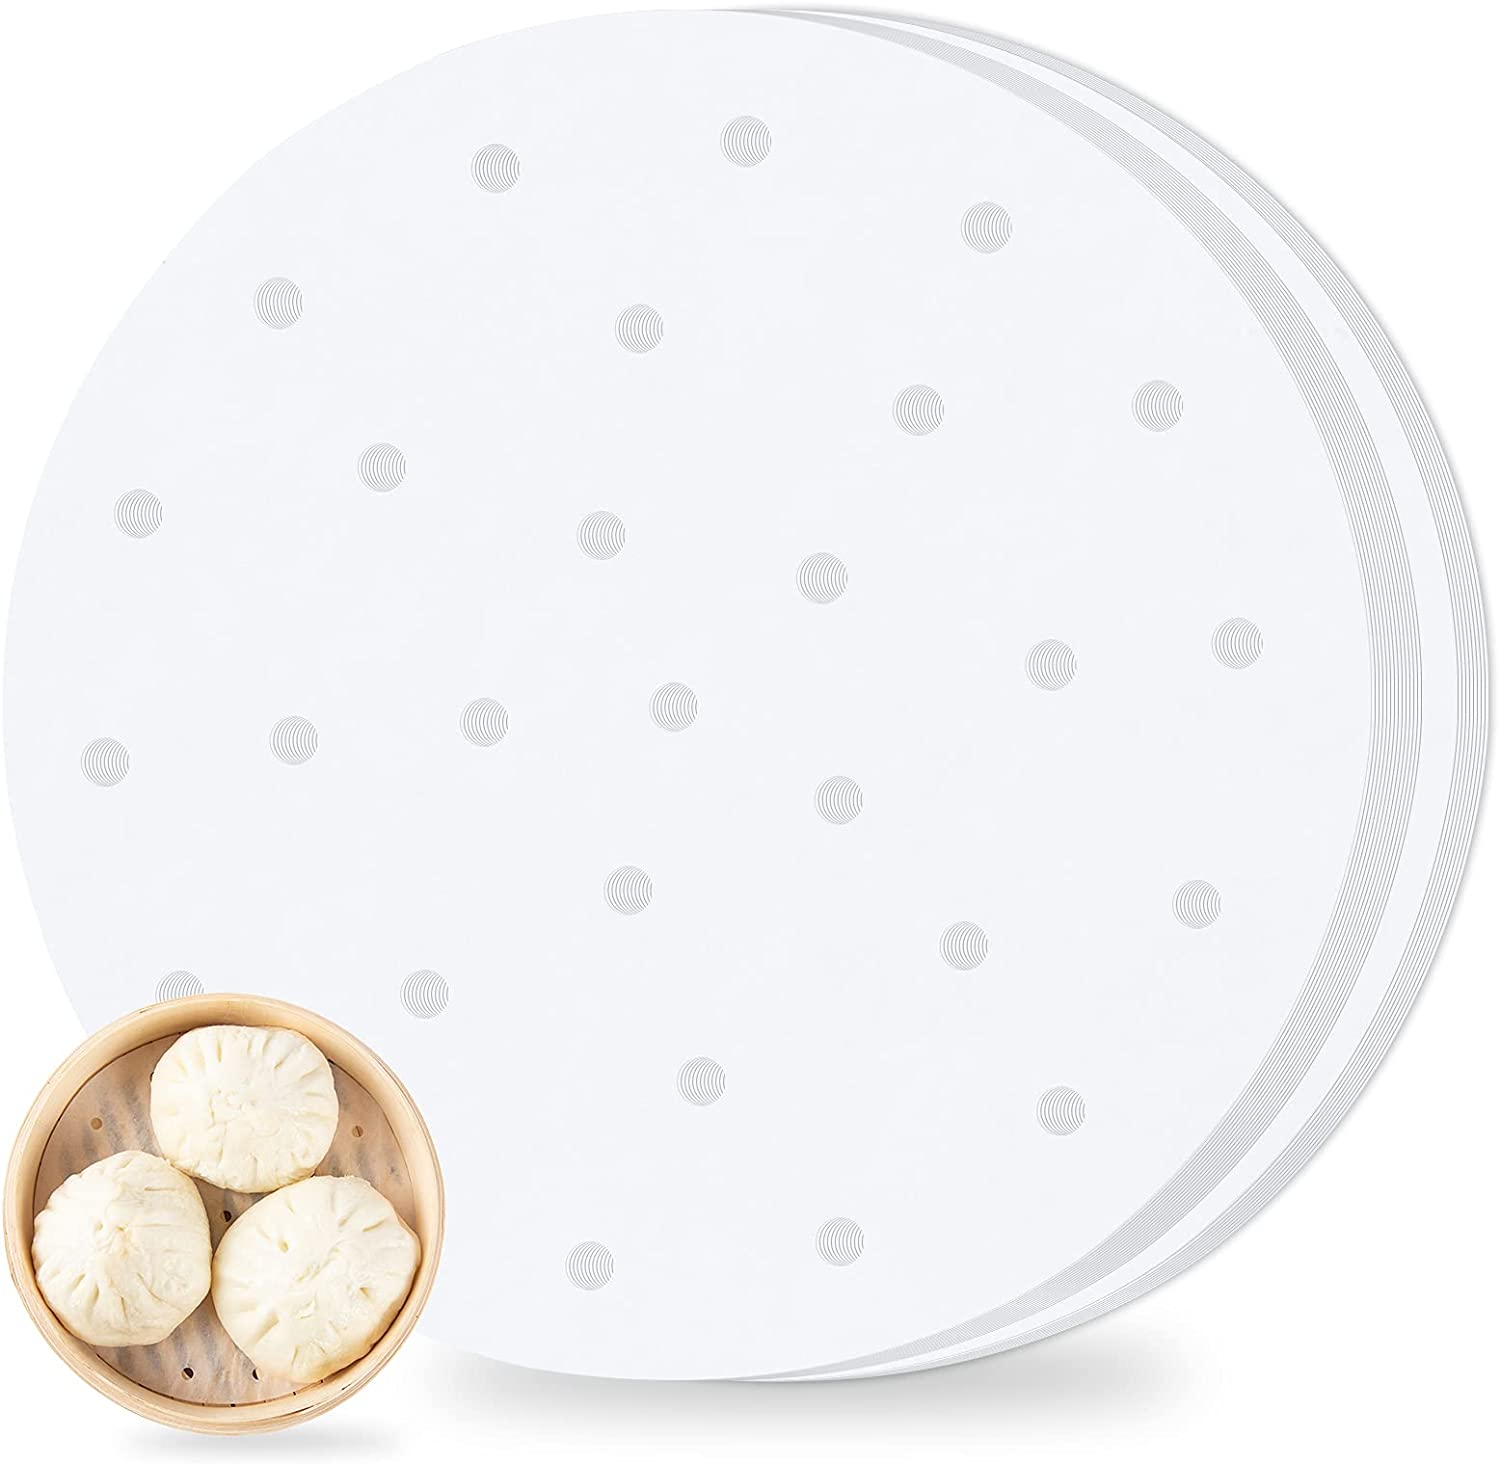 Air Fryer Perforated Parchment Paper 100pcs ,7inch Air Fryer Liner,Bamboo Steamer Paper,Premium Perforated Parchment Steaming Papers, Non-stick Steamer Mat, for Air Fryers/Baking/Cooking(7inch)